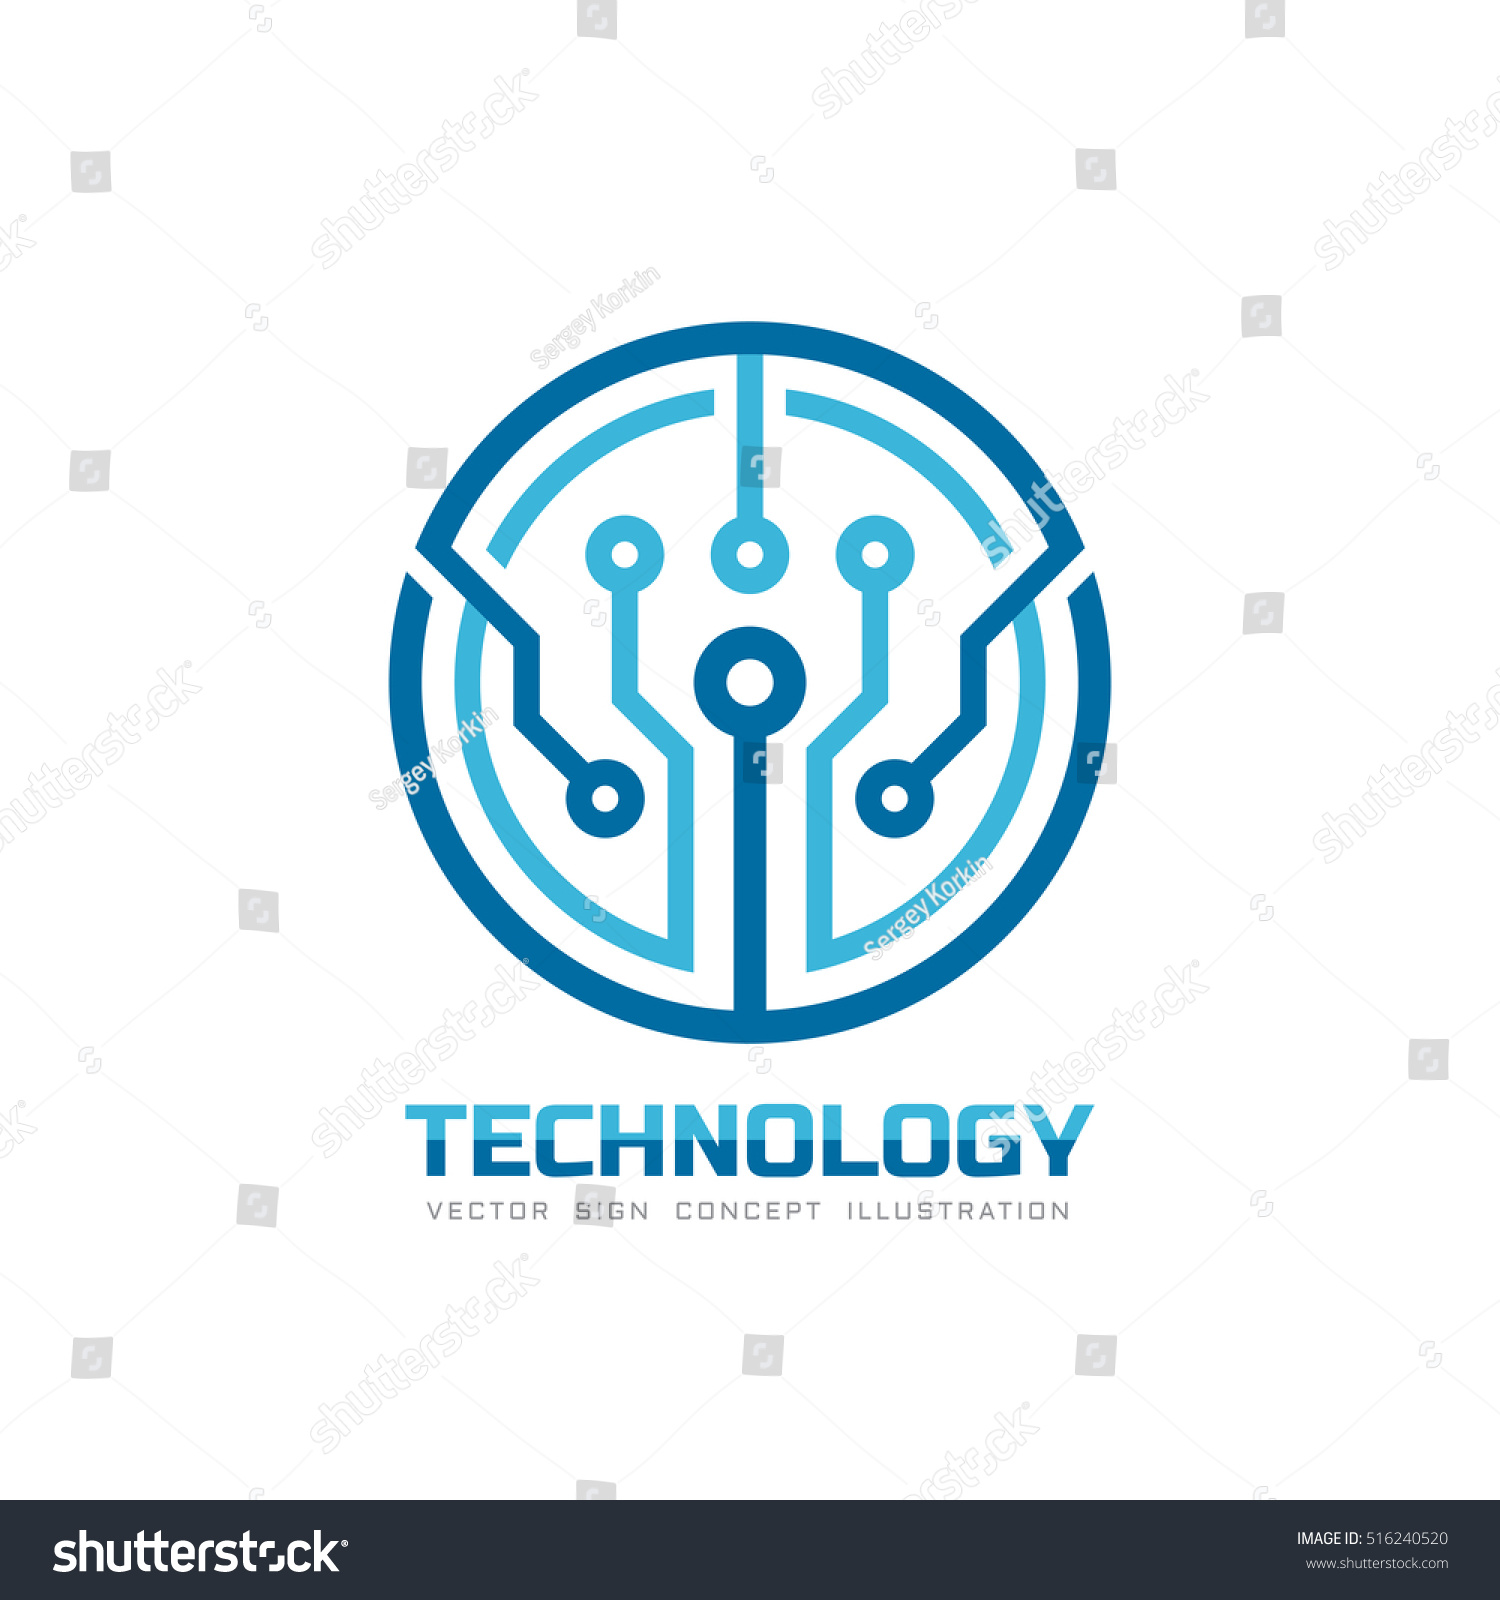 technology vector network sign internet identity corporate template shutterstock chip tech element illustration abstract vectors illustrations concept official